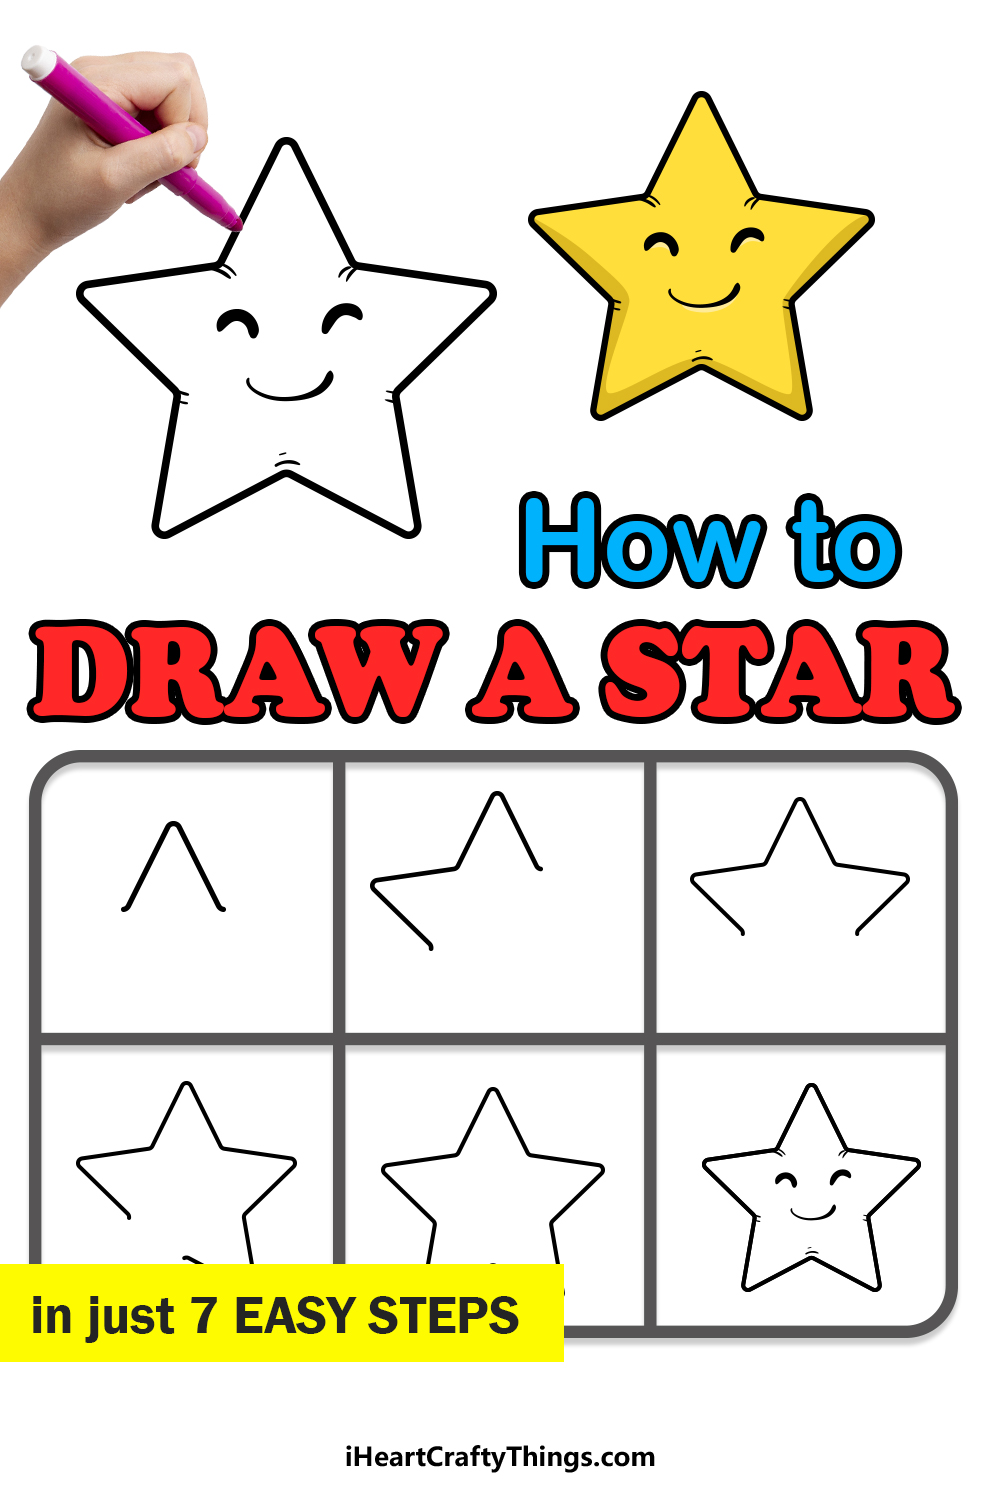 how to draw a star in 7 easy steps